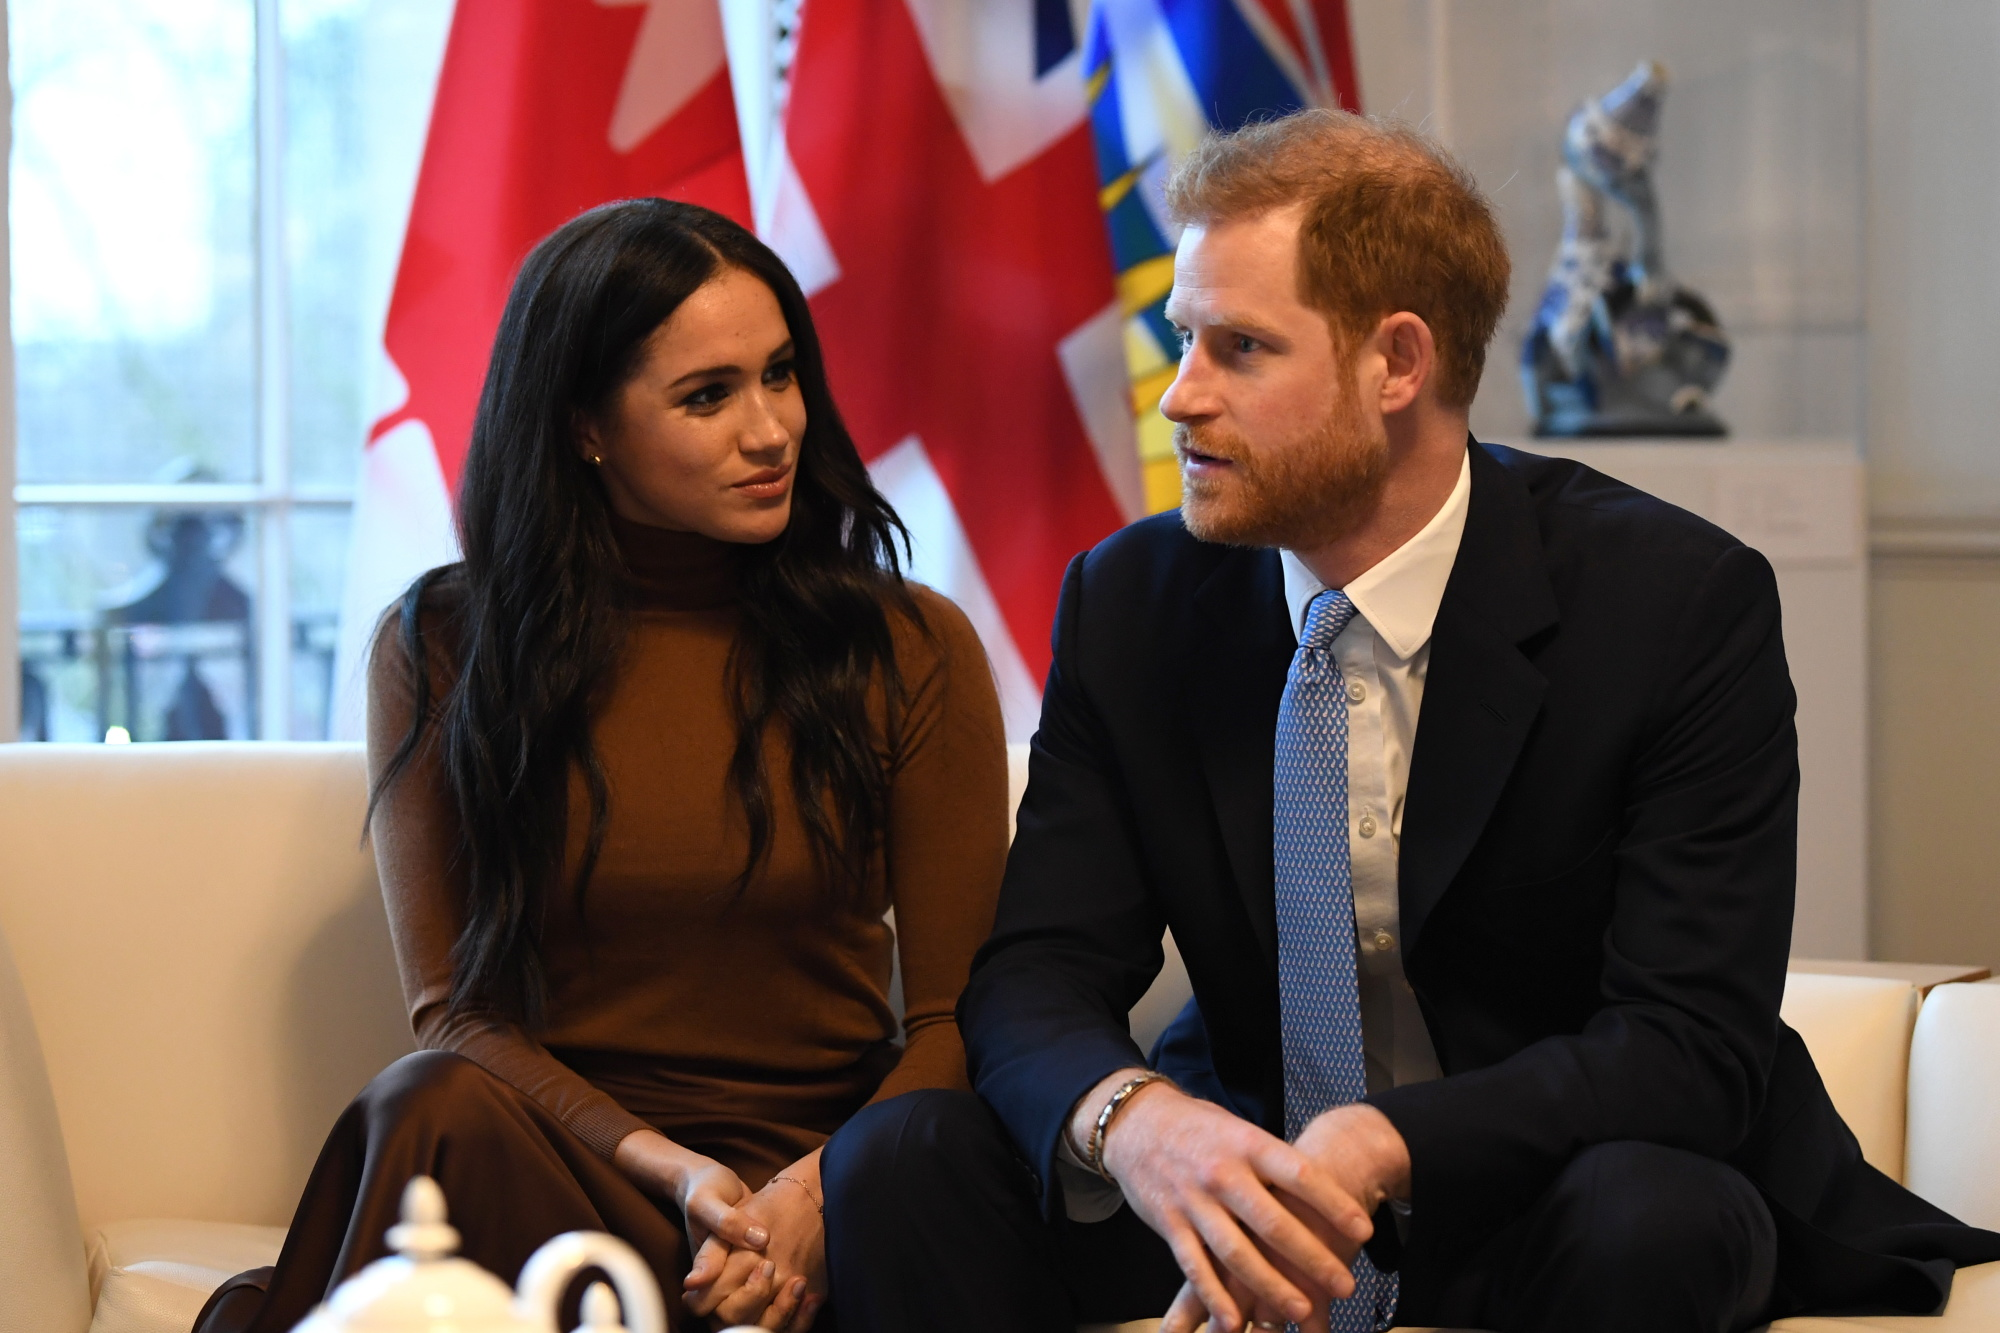 meghan-markle-harry-herceg-northfoto-pooli-images.jpg